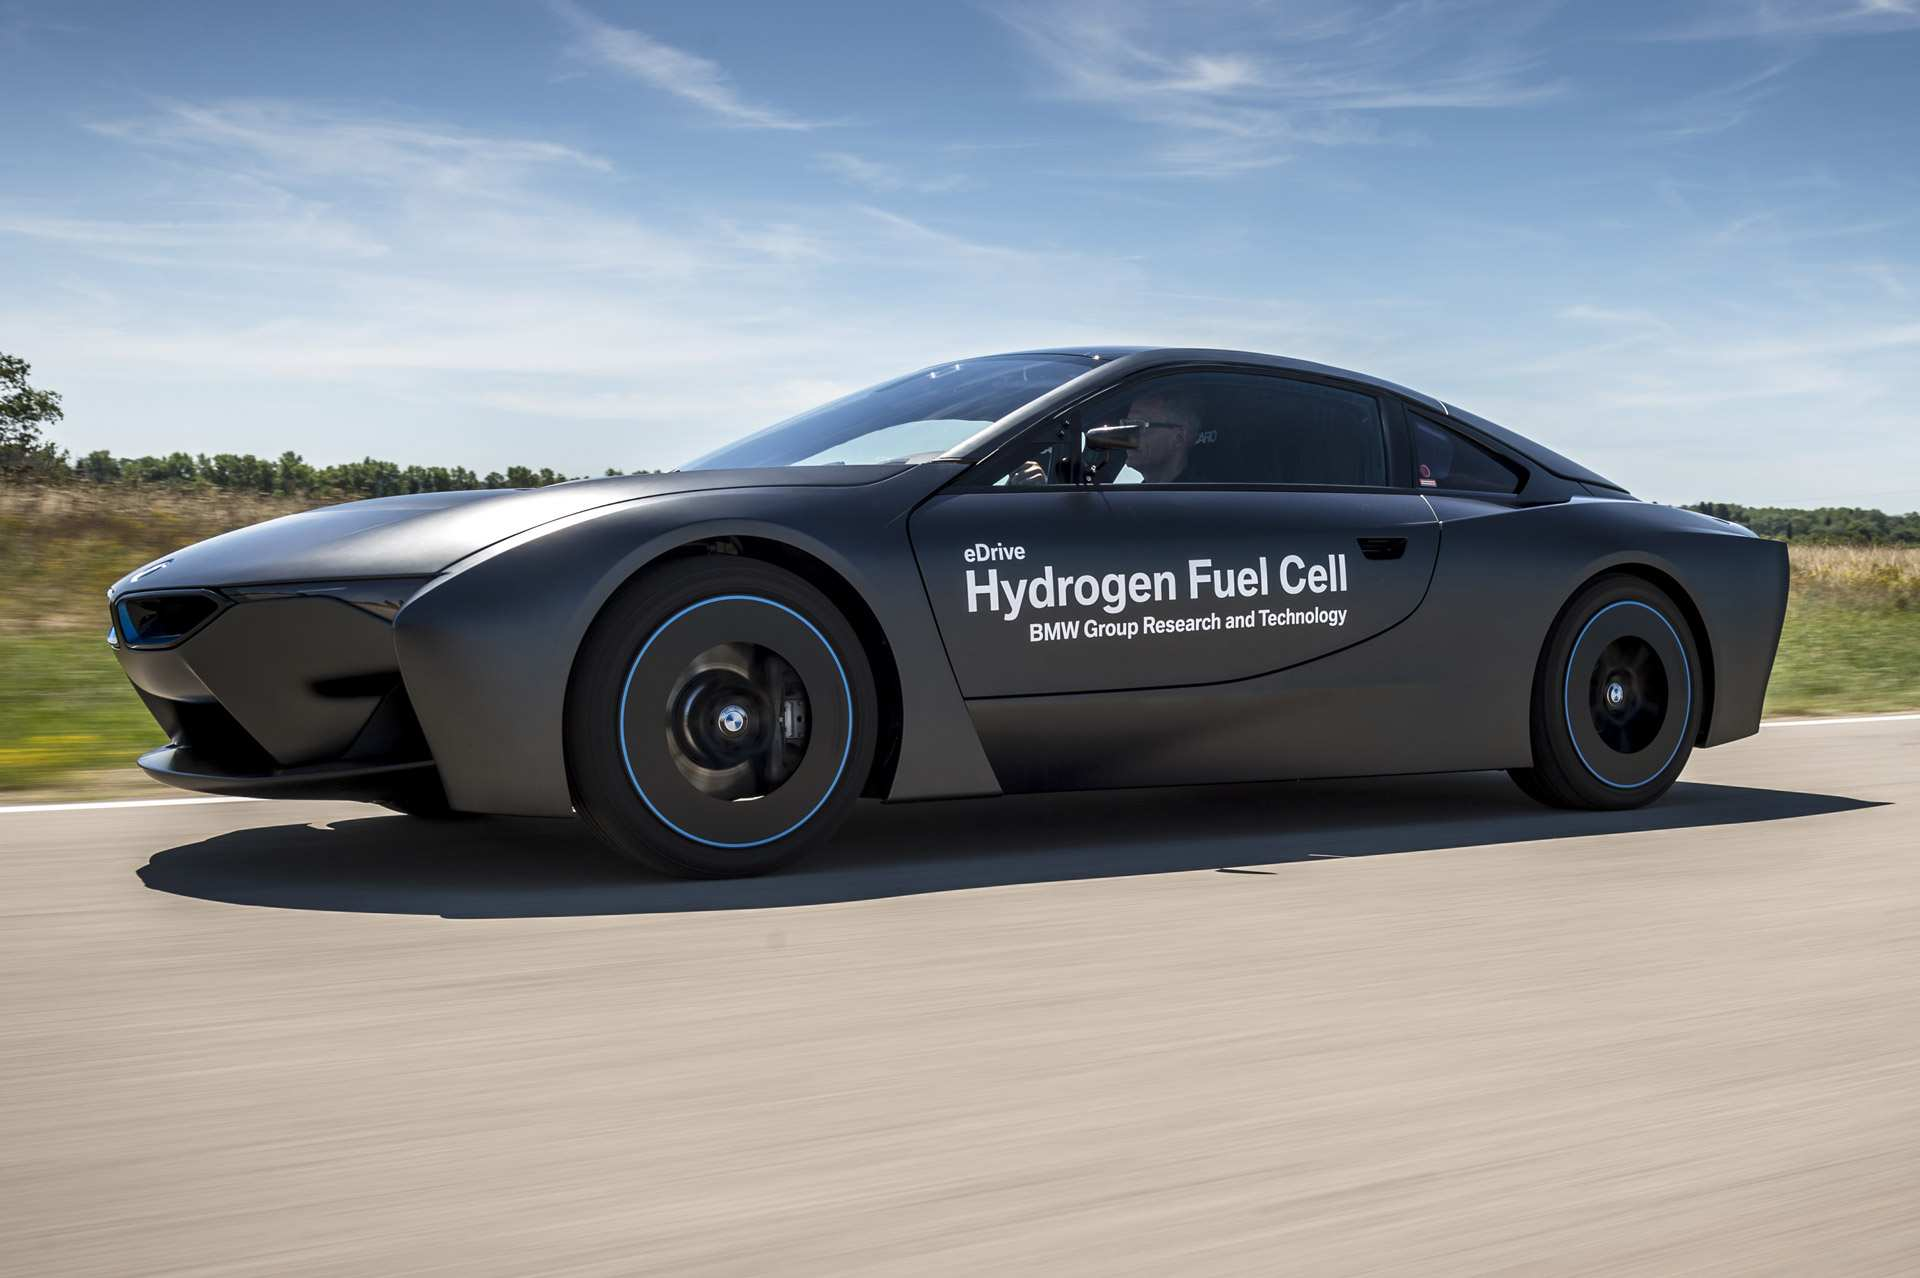 29 All New BMW Fuel Cell 2020 Rumors for BMW Fuel Cell 2020